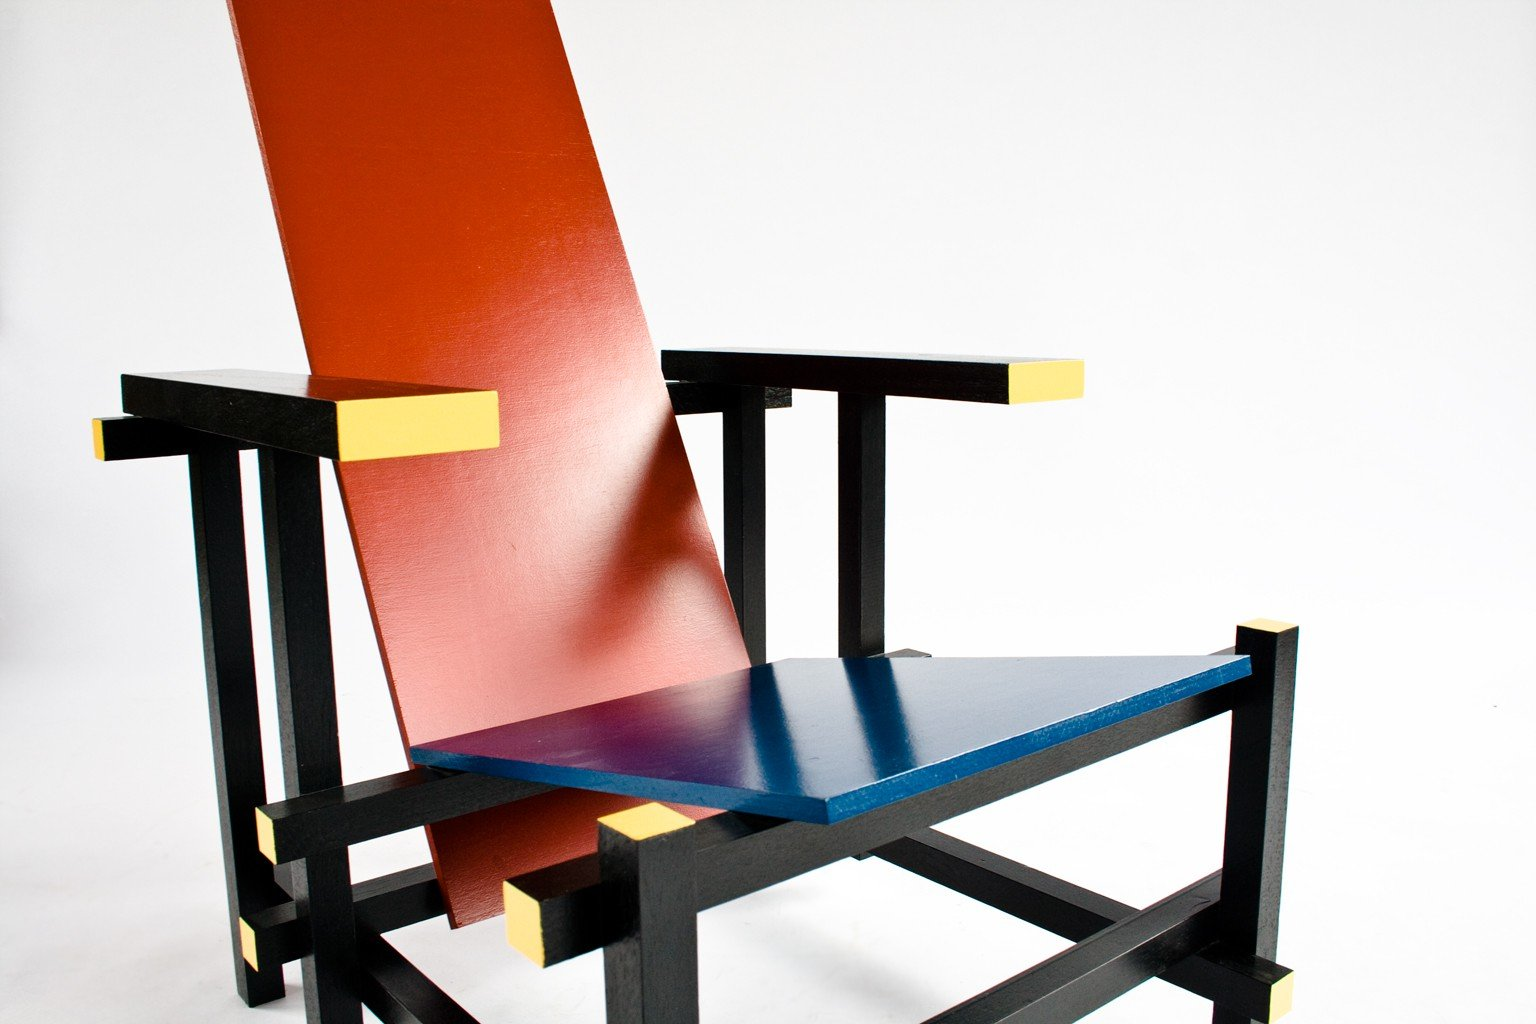 Red and blue arm chair, Gerrit RIETVELD - 1930s - Design ...